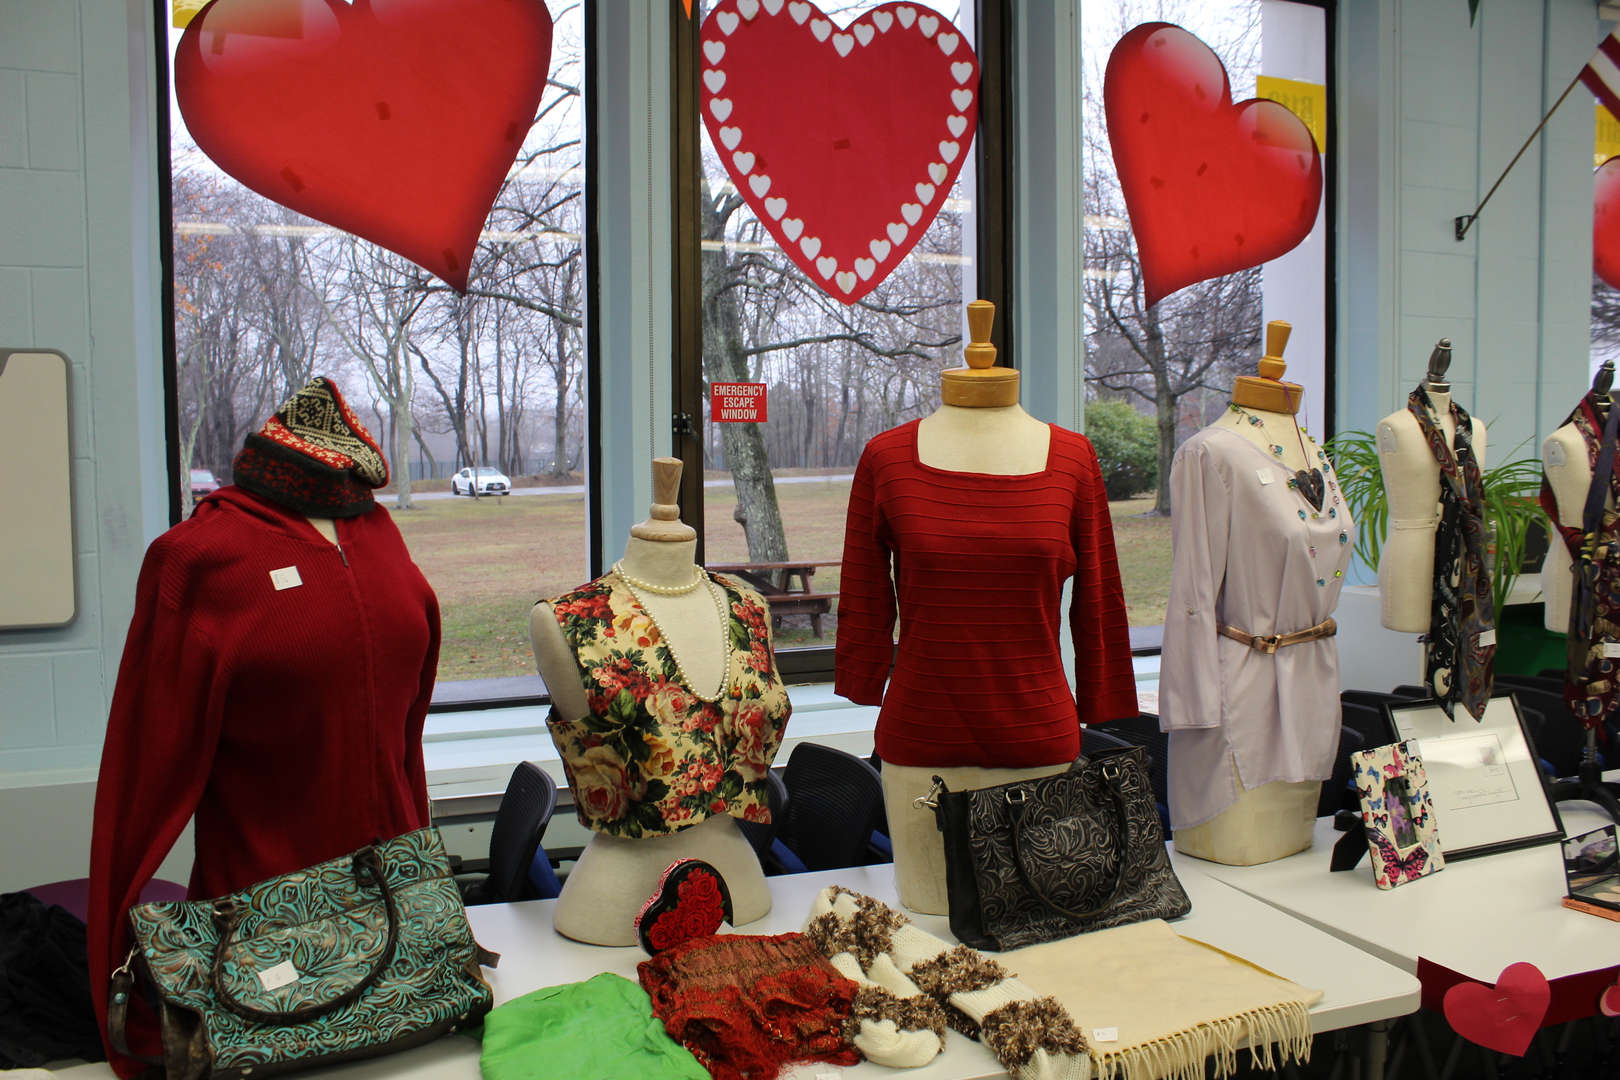 Mannequins dressed in red for Valentine's Day